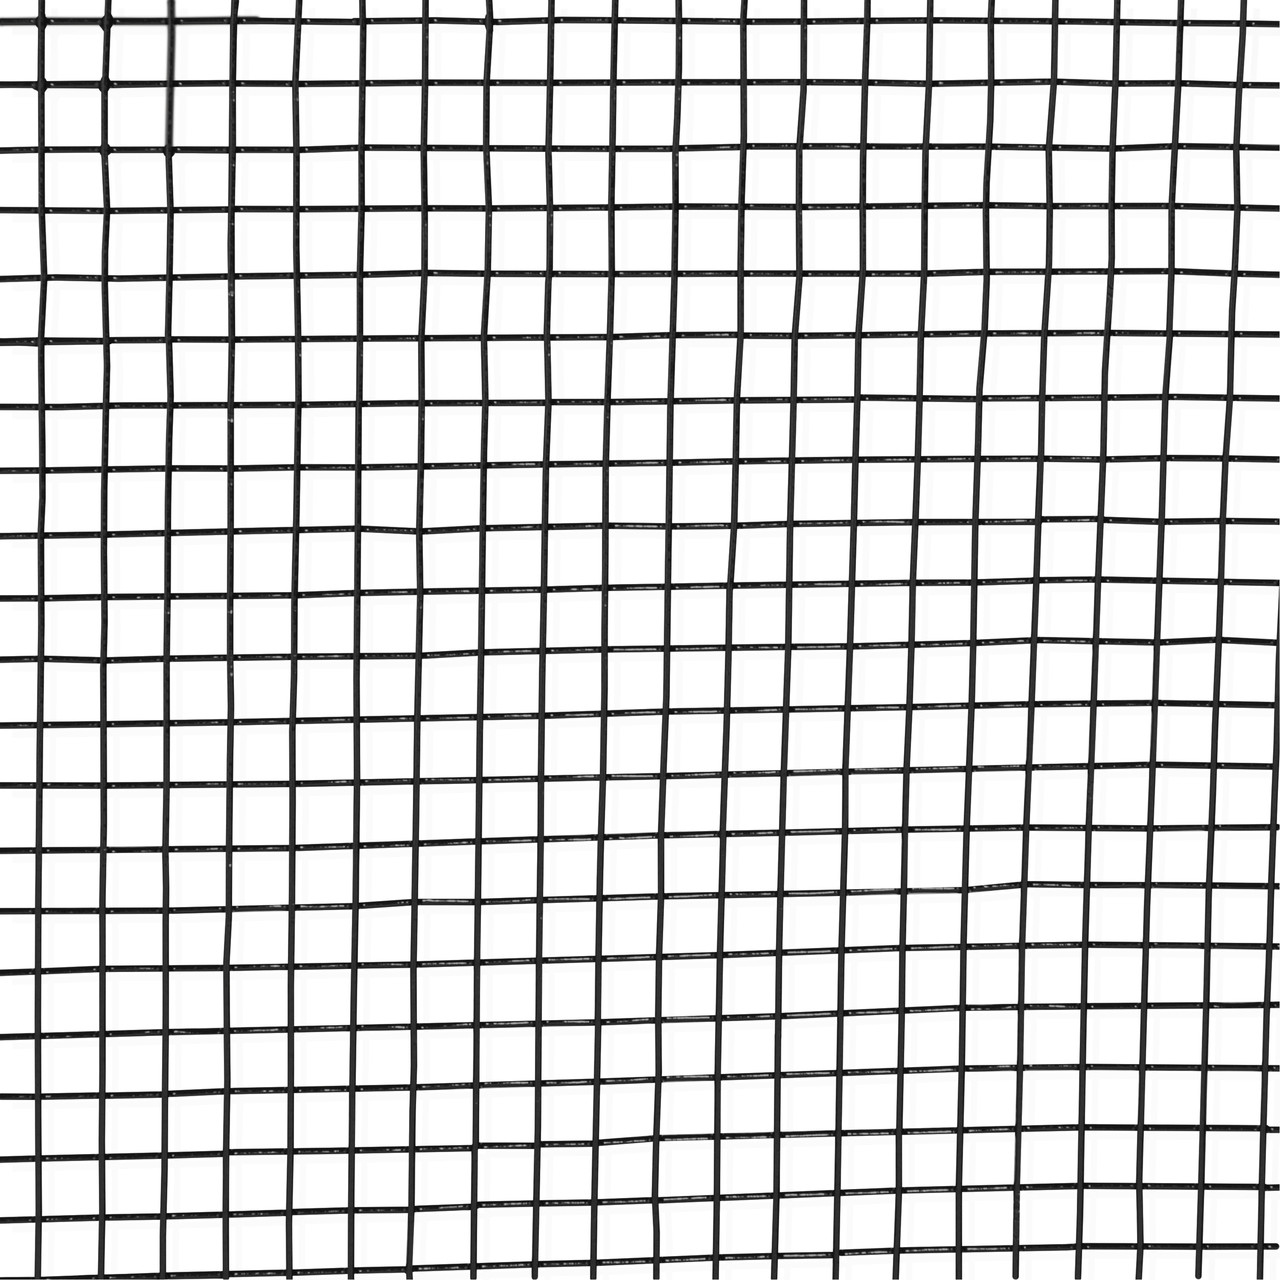 16 Gauge Black Vinyl Coated Welded Wire Mesh Size 0.5 inch by 0.5 ...